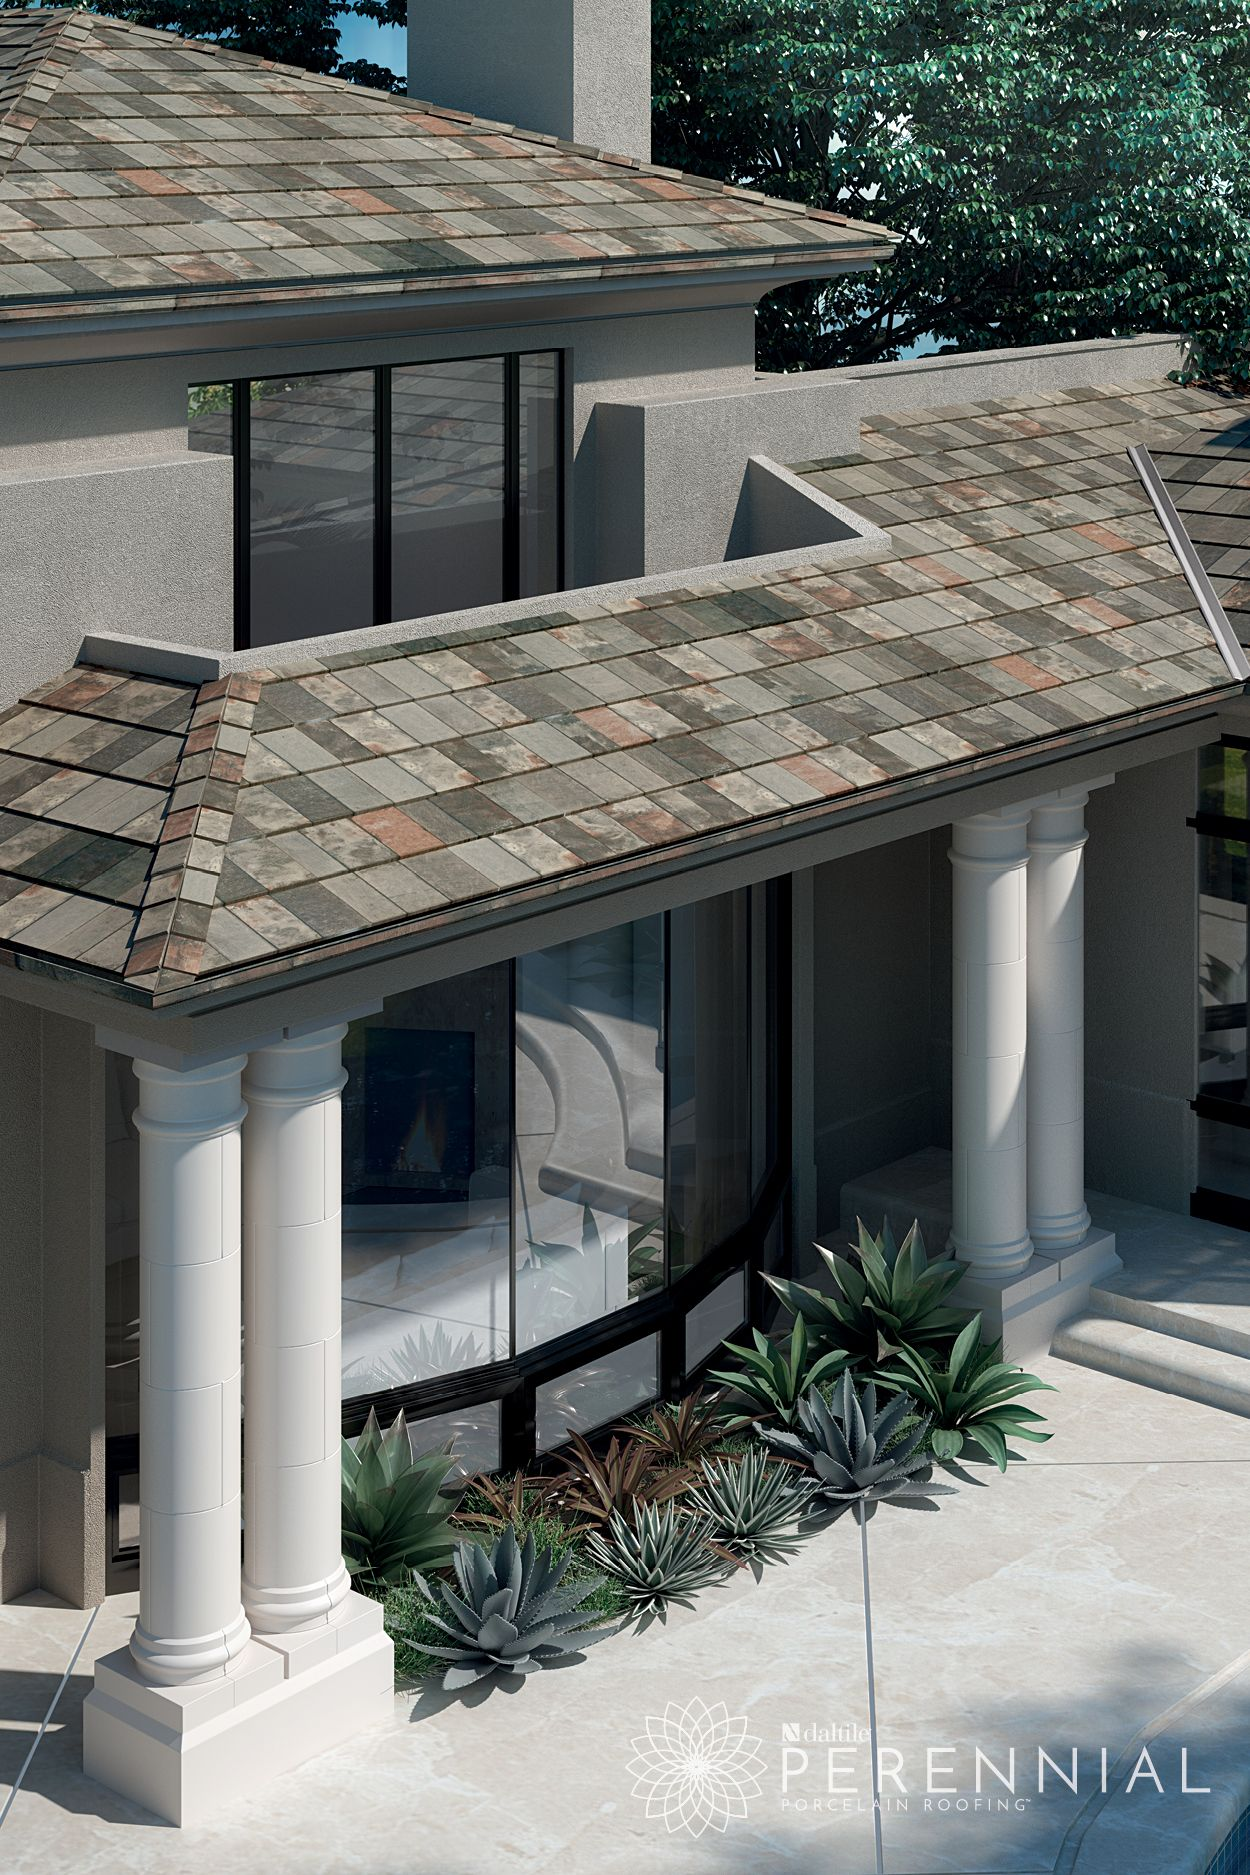 Amazed By The Unique Color Variations In This Perennial Porcelain Roofing Tile Whytile Roofing Architectural Features Ceramic Roof Tiles